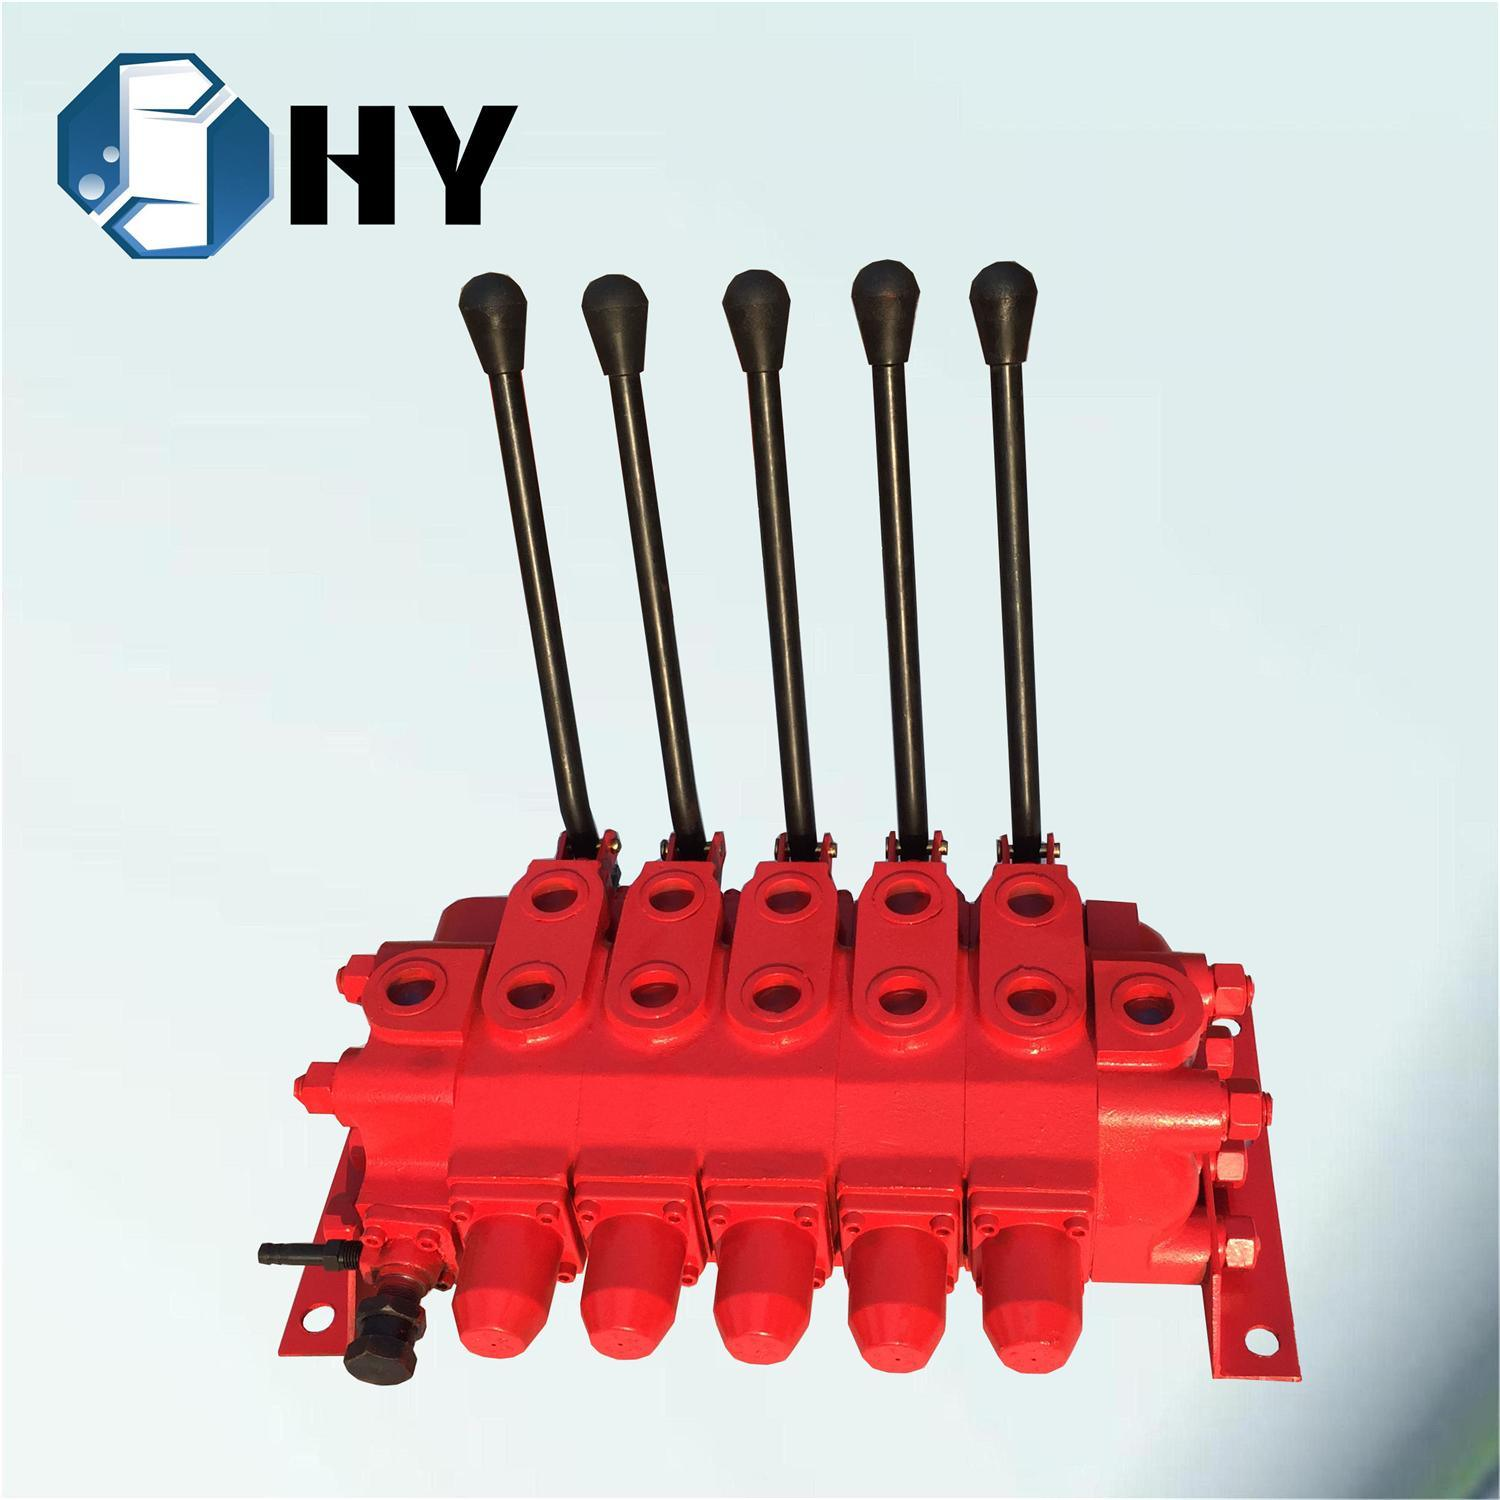 5 Spool/Lever/Section Hydraulic Multiple Control Valve for Brick Macking Machine